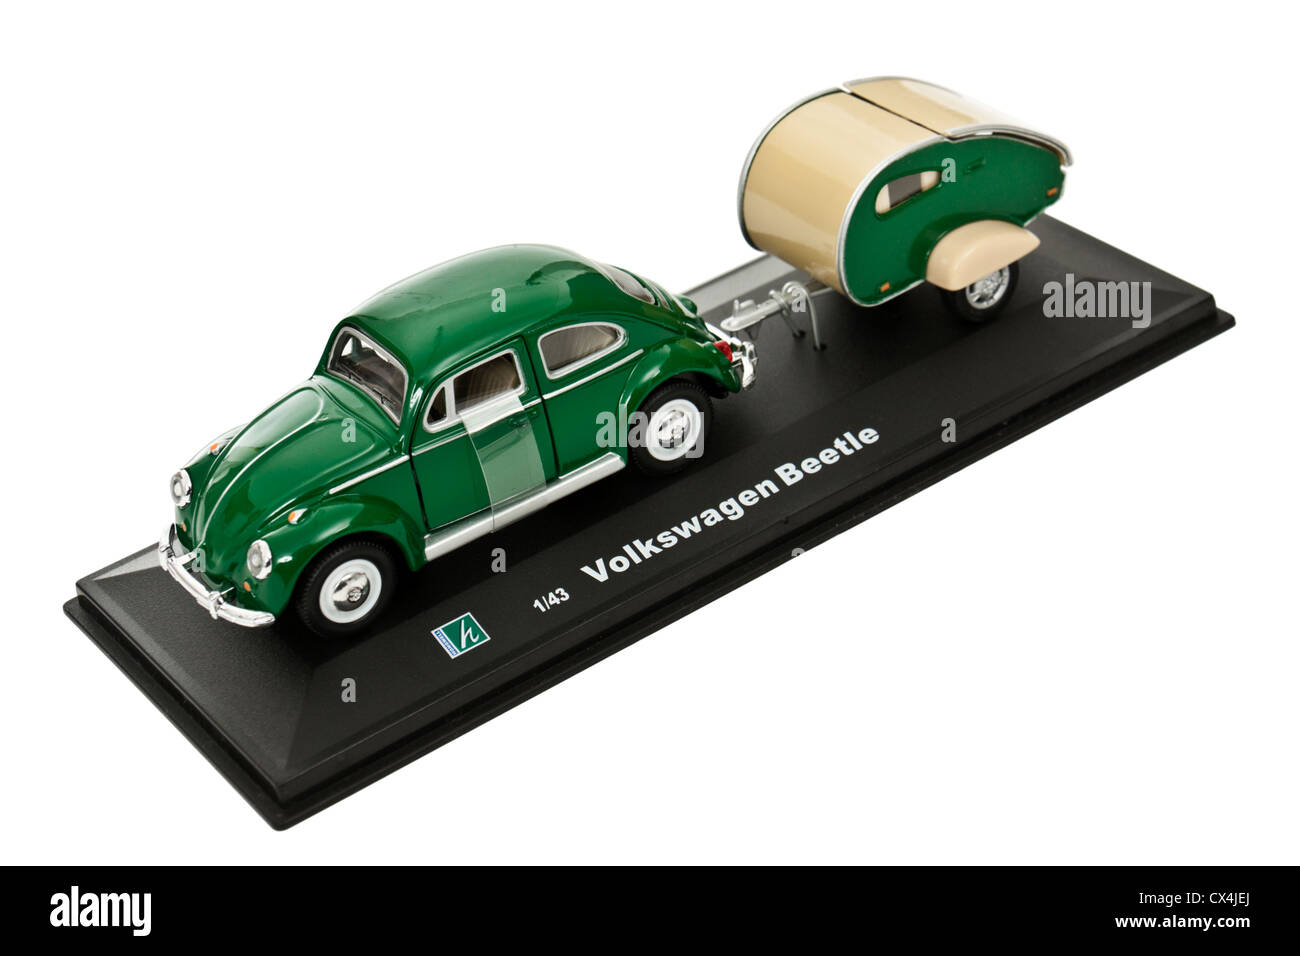 vw beetle and caravan with Stock Photo Cararama Hongwell Toys 143 Scale Diecast Volkswagen Beetle Towing 50504122 on Wiring Diagram as well Sheep Wagon likewise Gl ing Worthy C ing Trailers 3017221 besides Watch also Lego Star Wars At Te 75157 Images Surfaced.